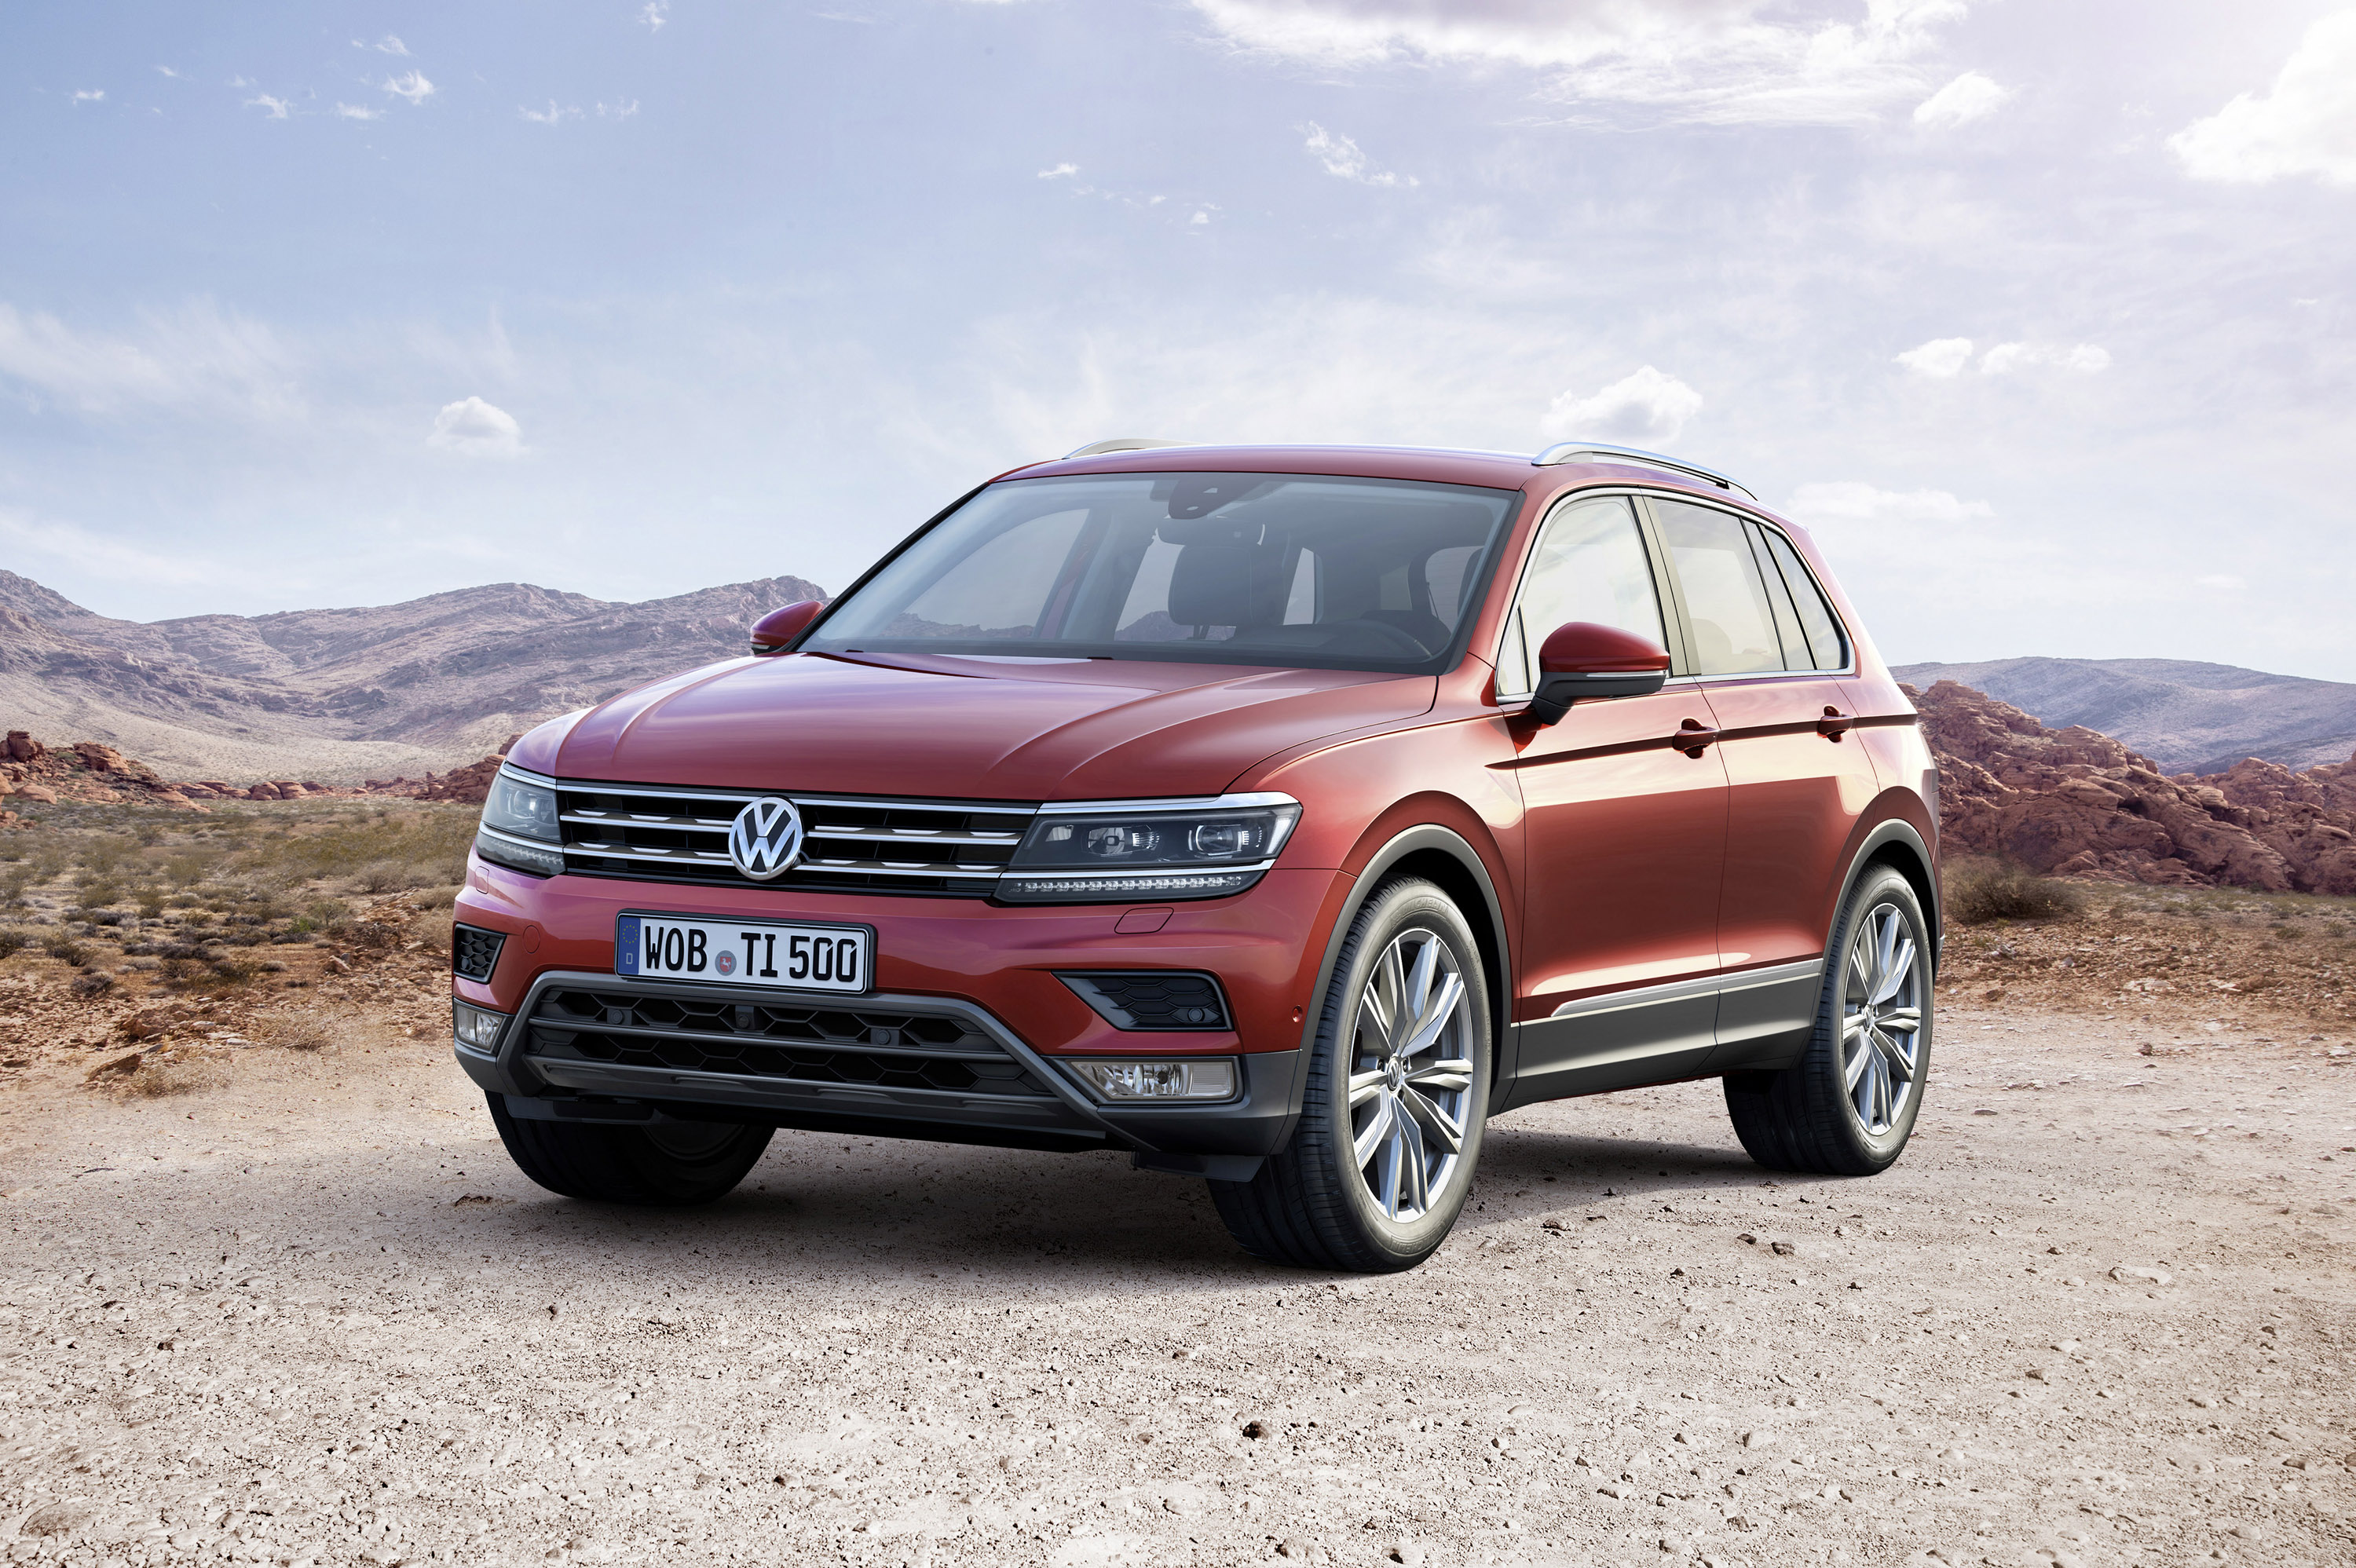 Volkswagen Tiguan photo #1